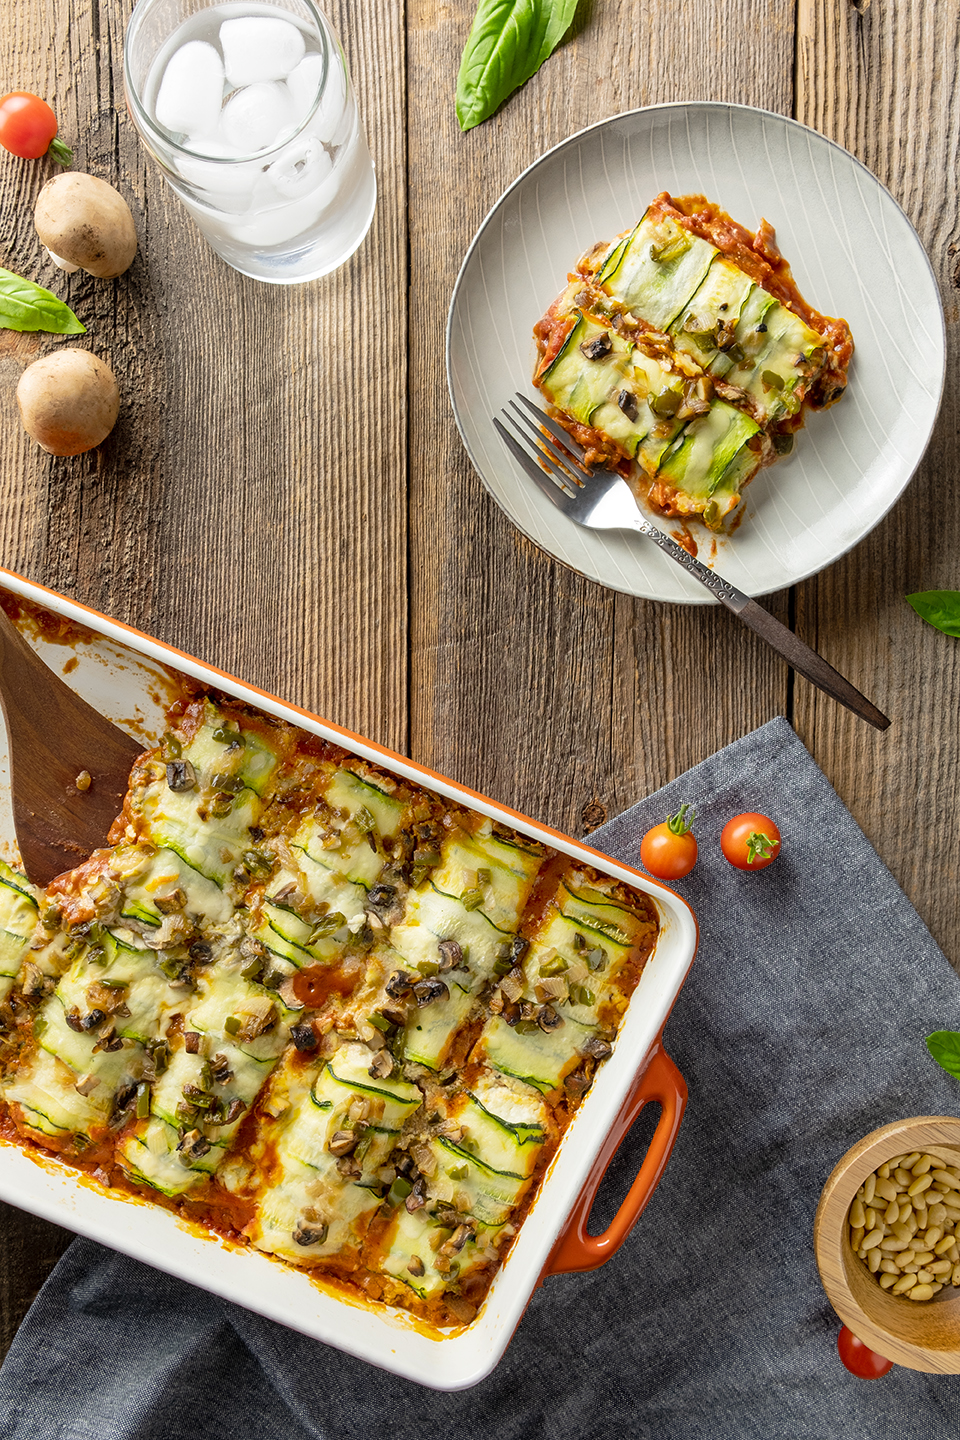 JodiLoves_Low-Carb Zucchini-Ricotta-Cannelloni_plated-AFTER.jpg